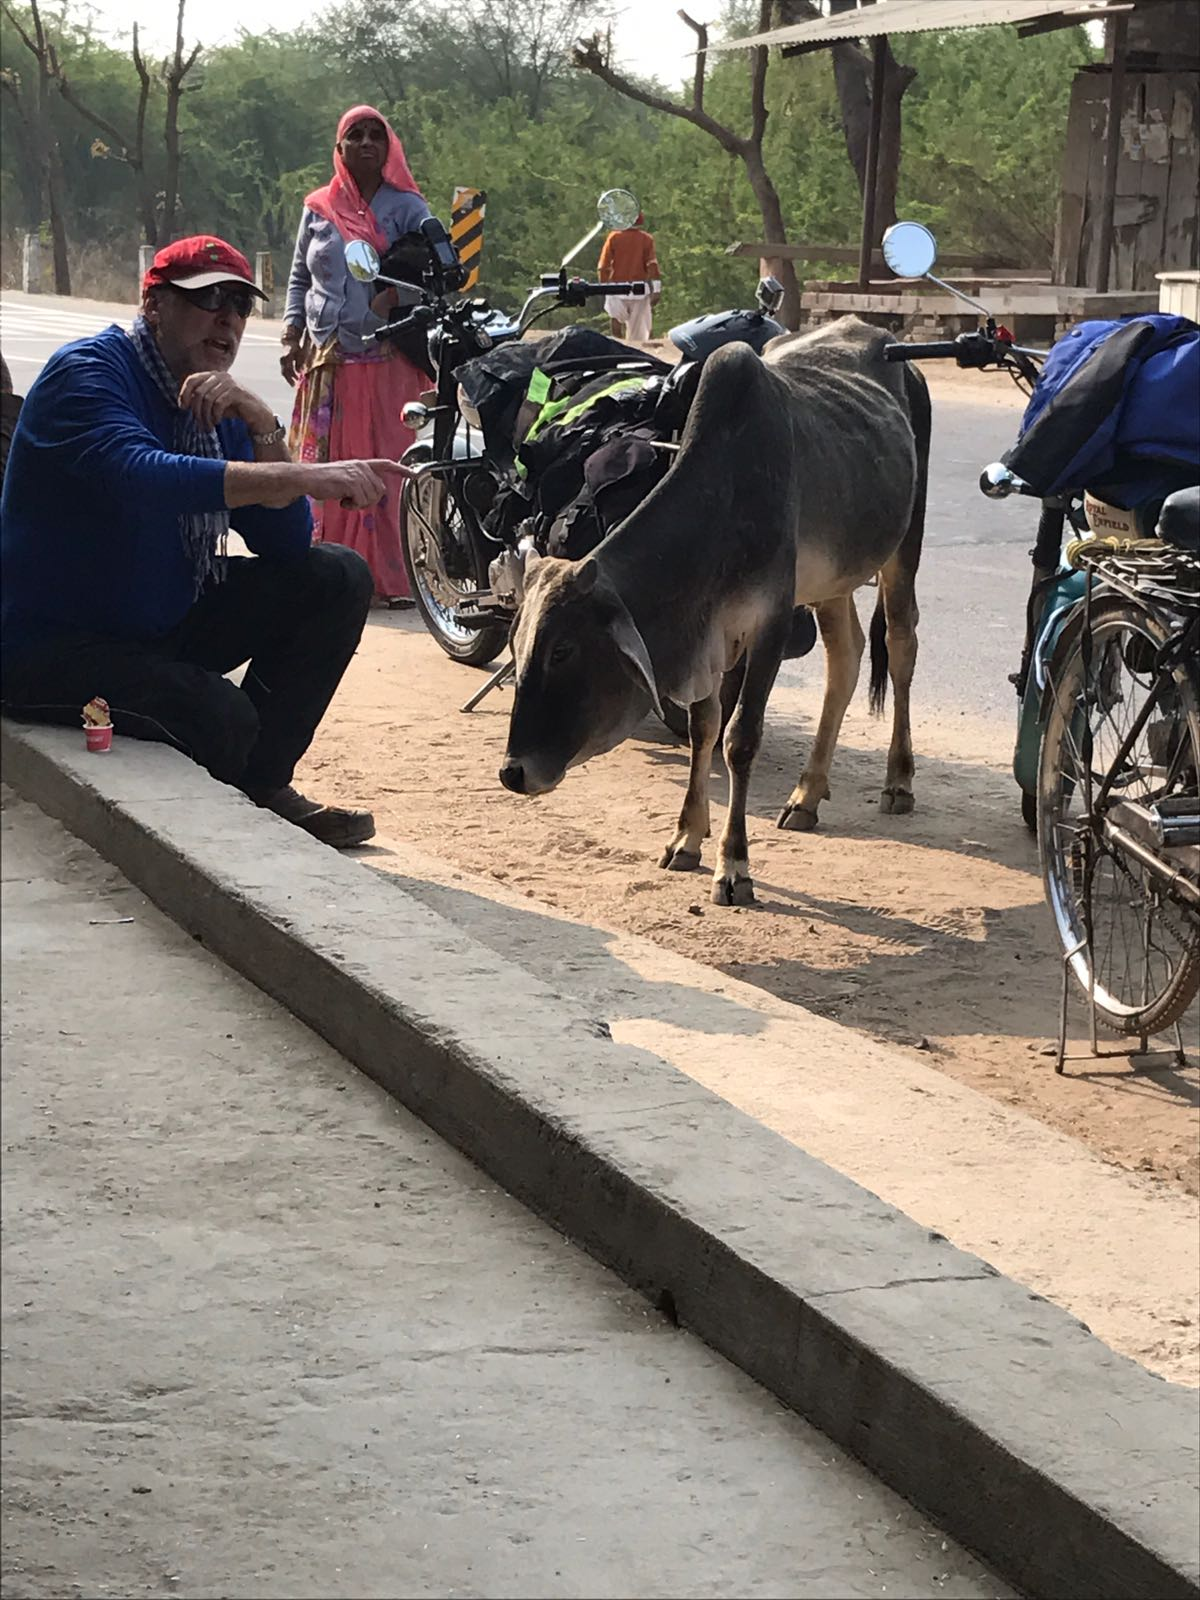 The Journey to India Part 3: The Towns, The People, The Cows